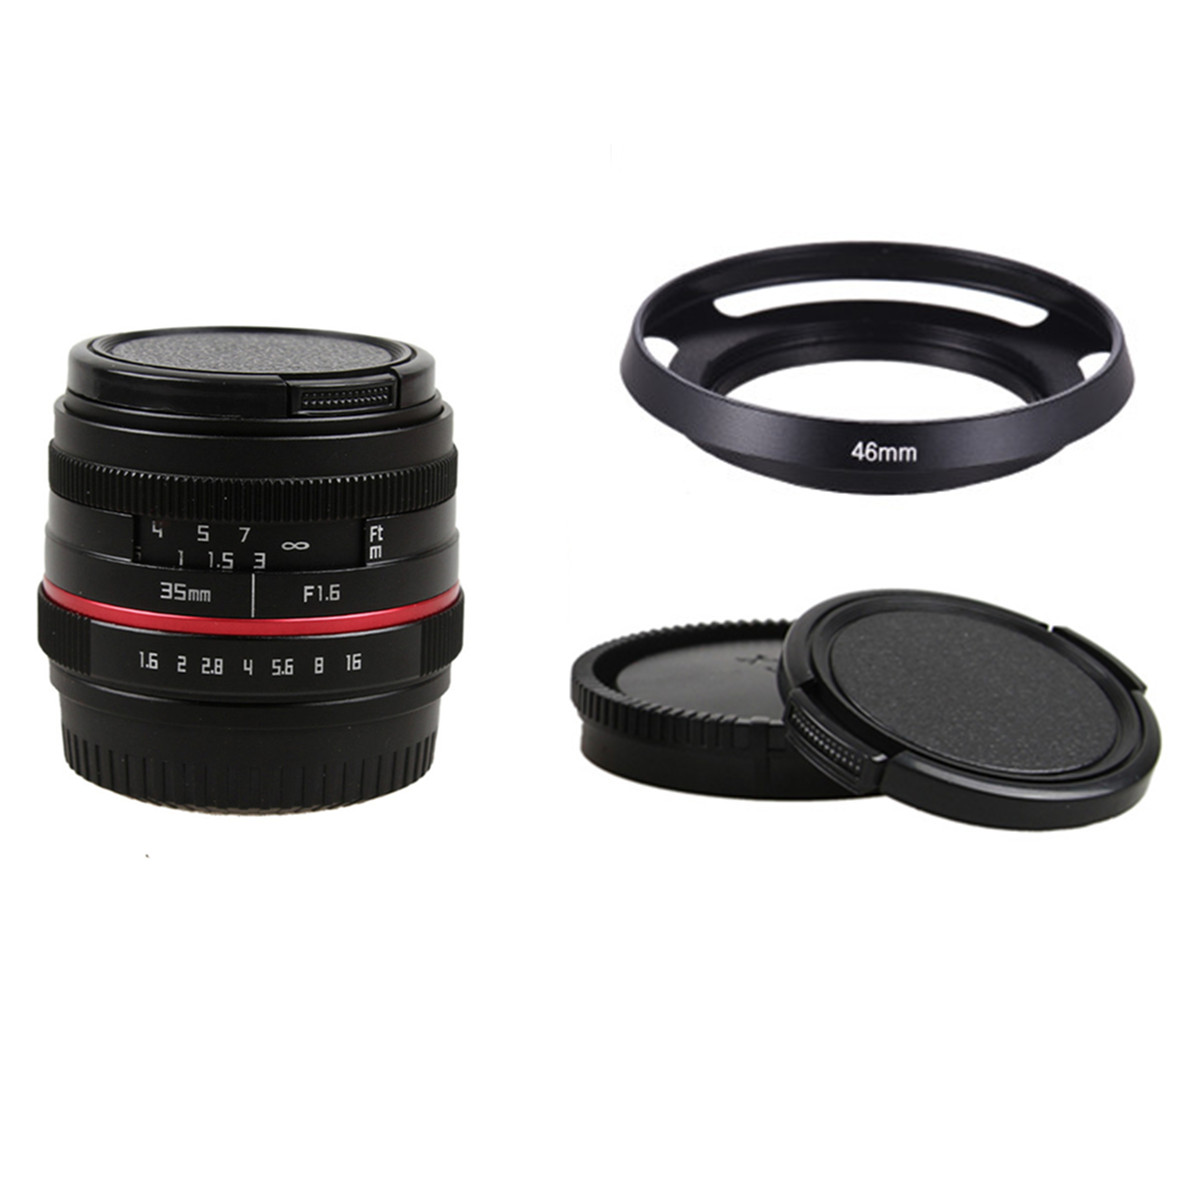 50mm f/1.8 APS-C F1.8 camera Lens for Olympus M43 MFT EP5 OMD E-M1 PEN-F E-M1 Mark II E-M5 E-M5 Mark II E-M10 E-M10 Mark II/III silver fujian 50mm f1 4 cctv movie lens c mount to micro 4 3 m4 3 for olympus e m1 mark ii e m5 ii e m10 ii e pl7 8 e pm1 e pl2